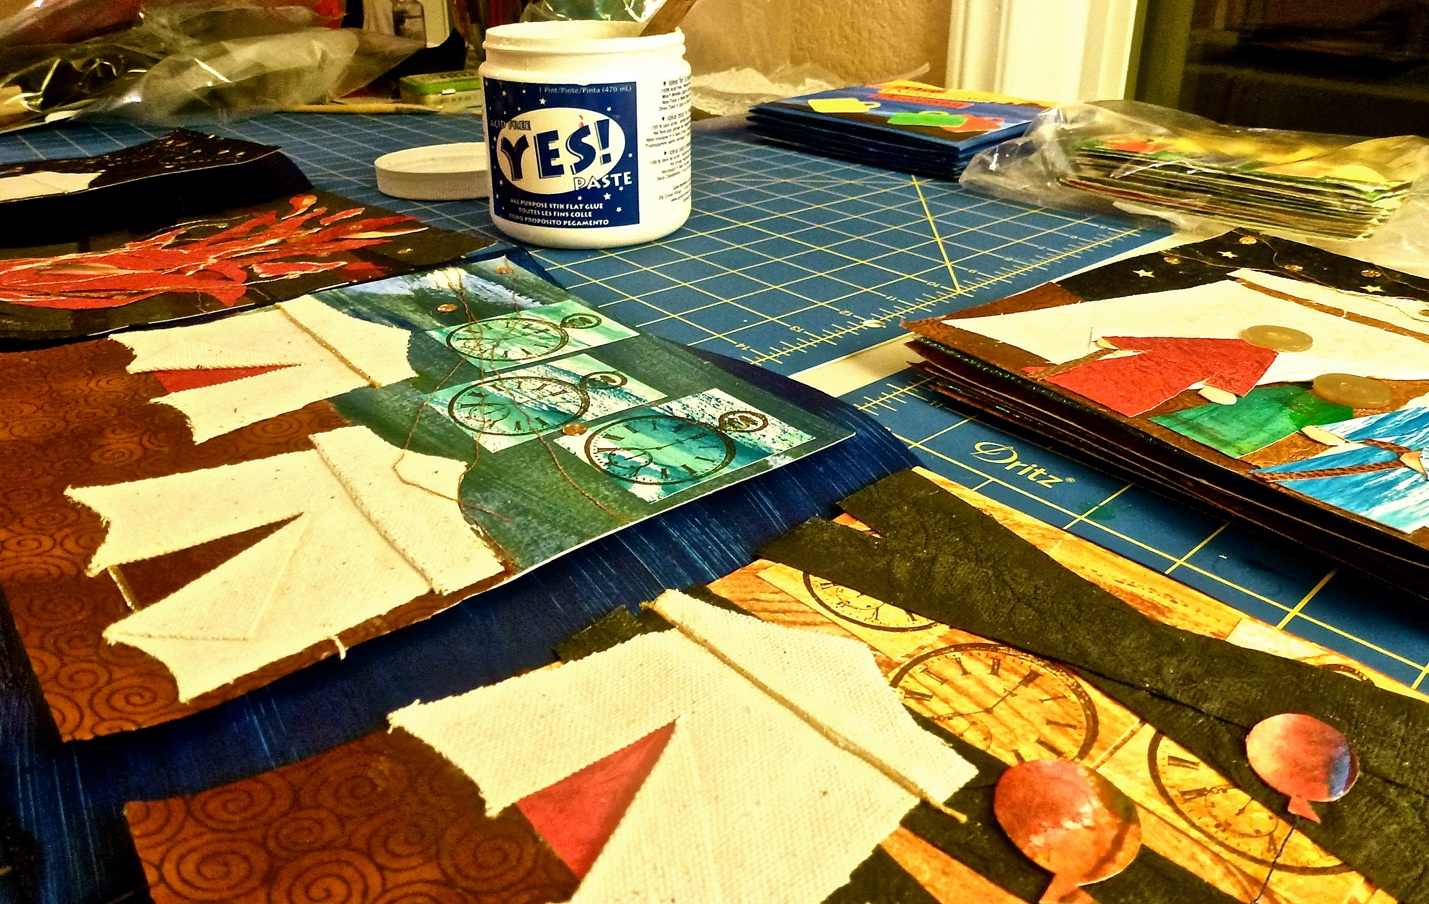 Completing A Collaged Book and More